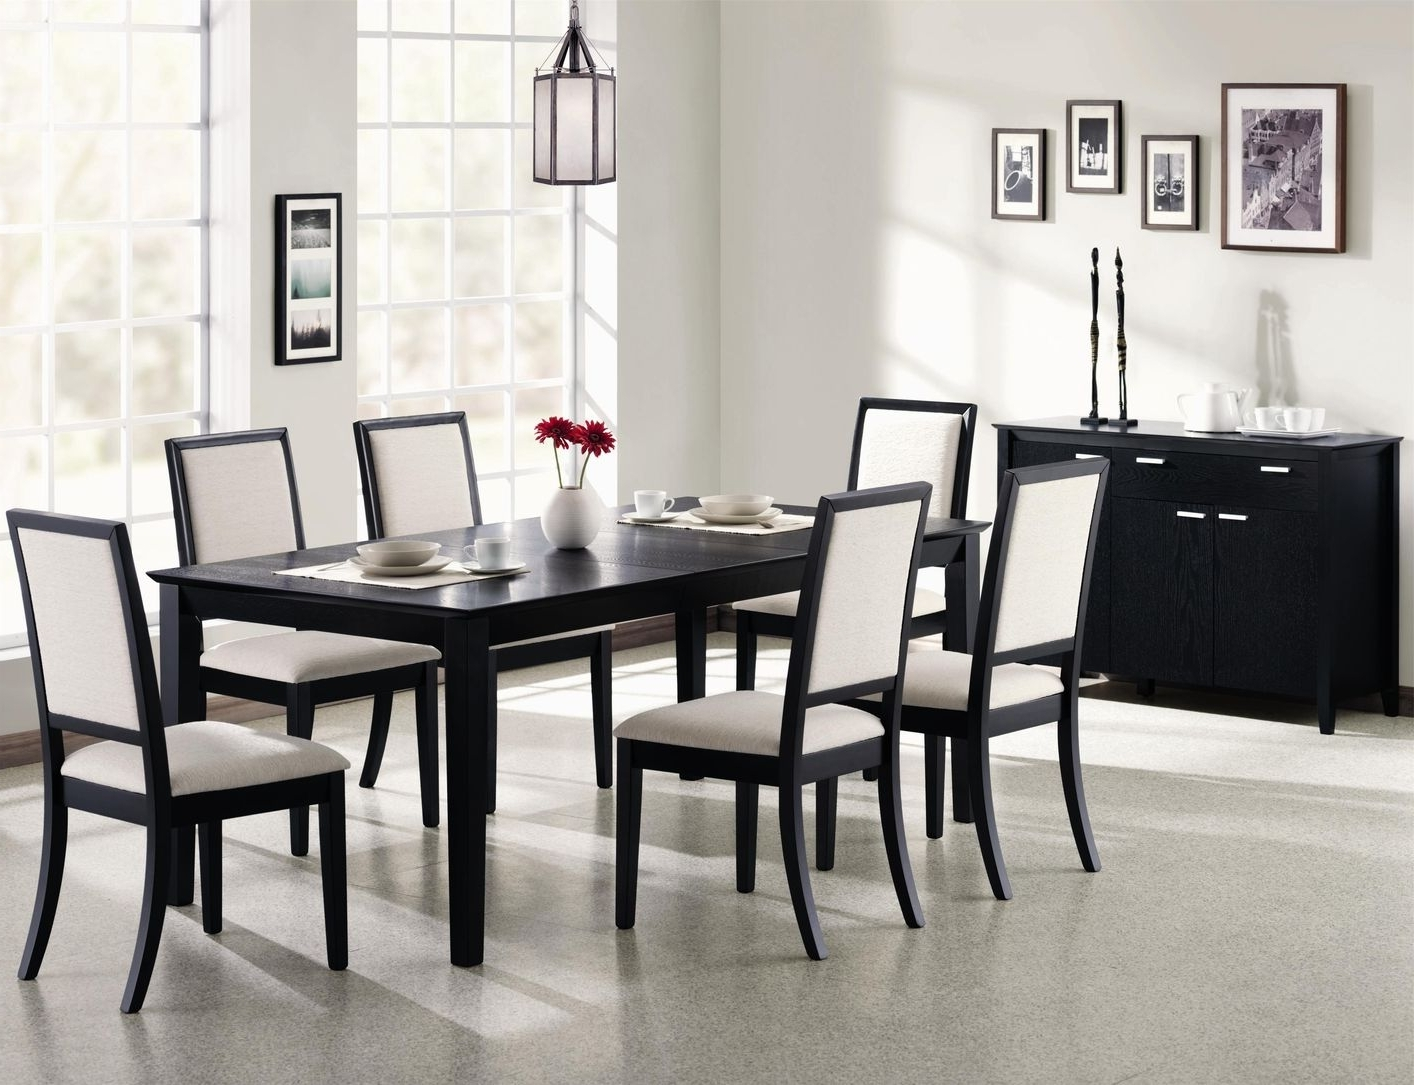 Dark Wooden Dining Tables In Most Recently Released Louise Black Wood Dining Table Set – Steal A Sofa Furniture Outlet (View 8 of 25)